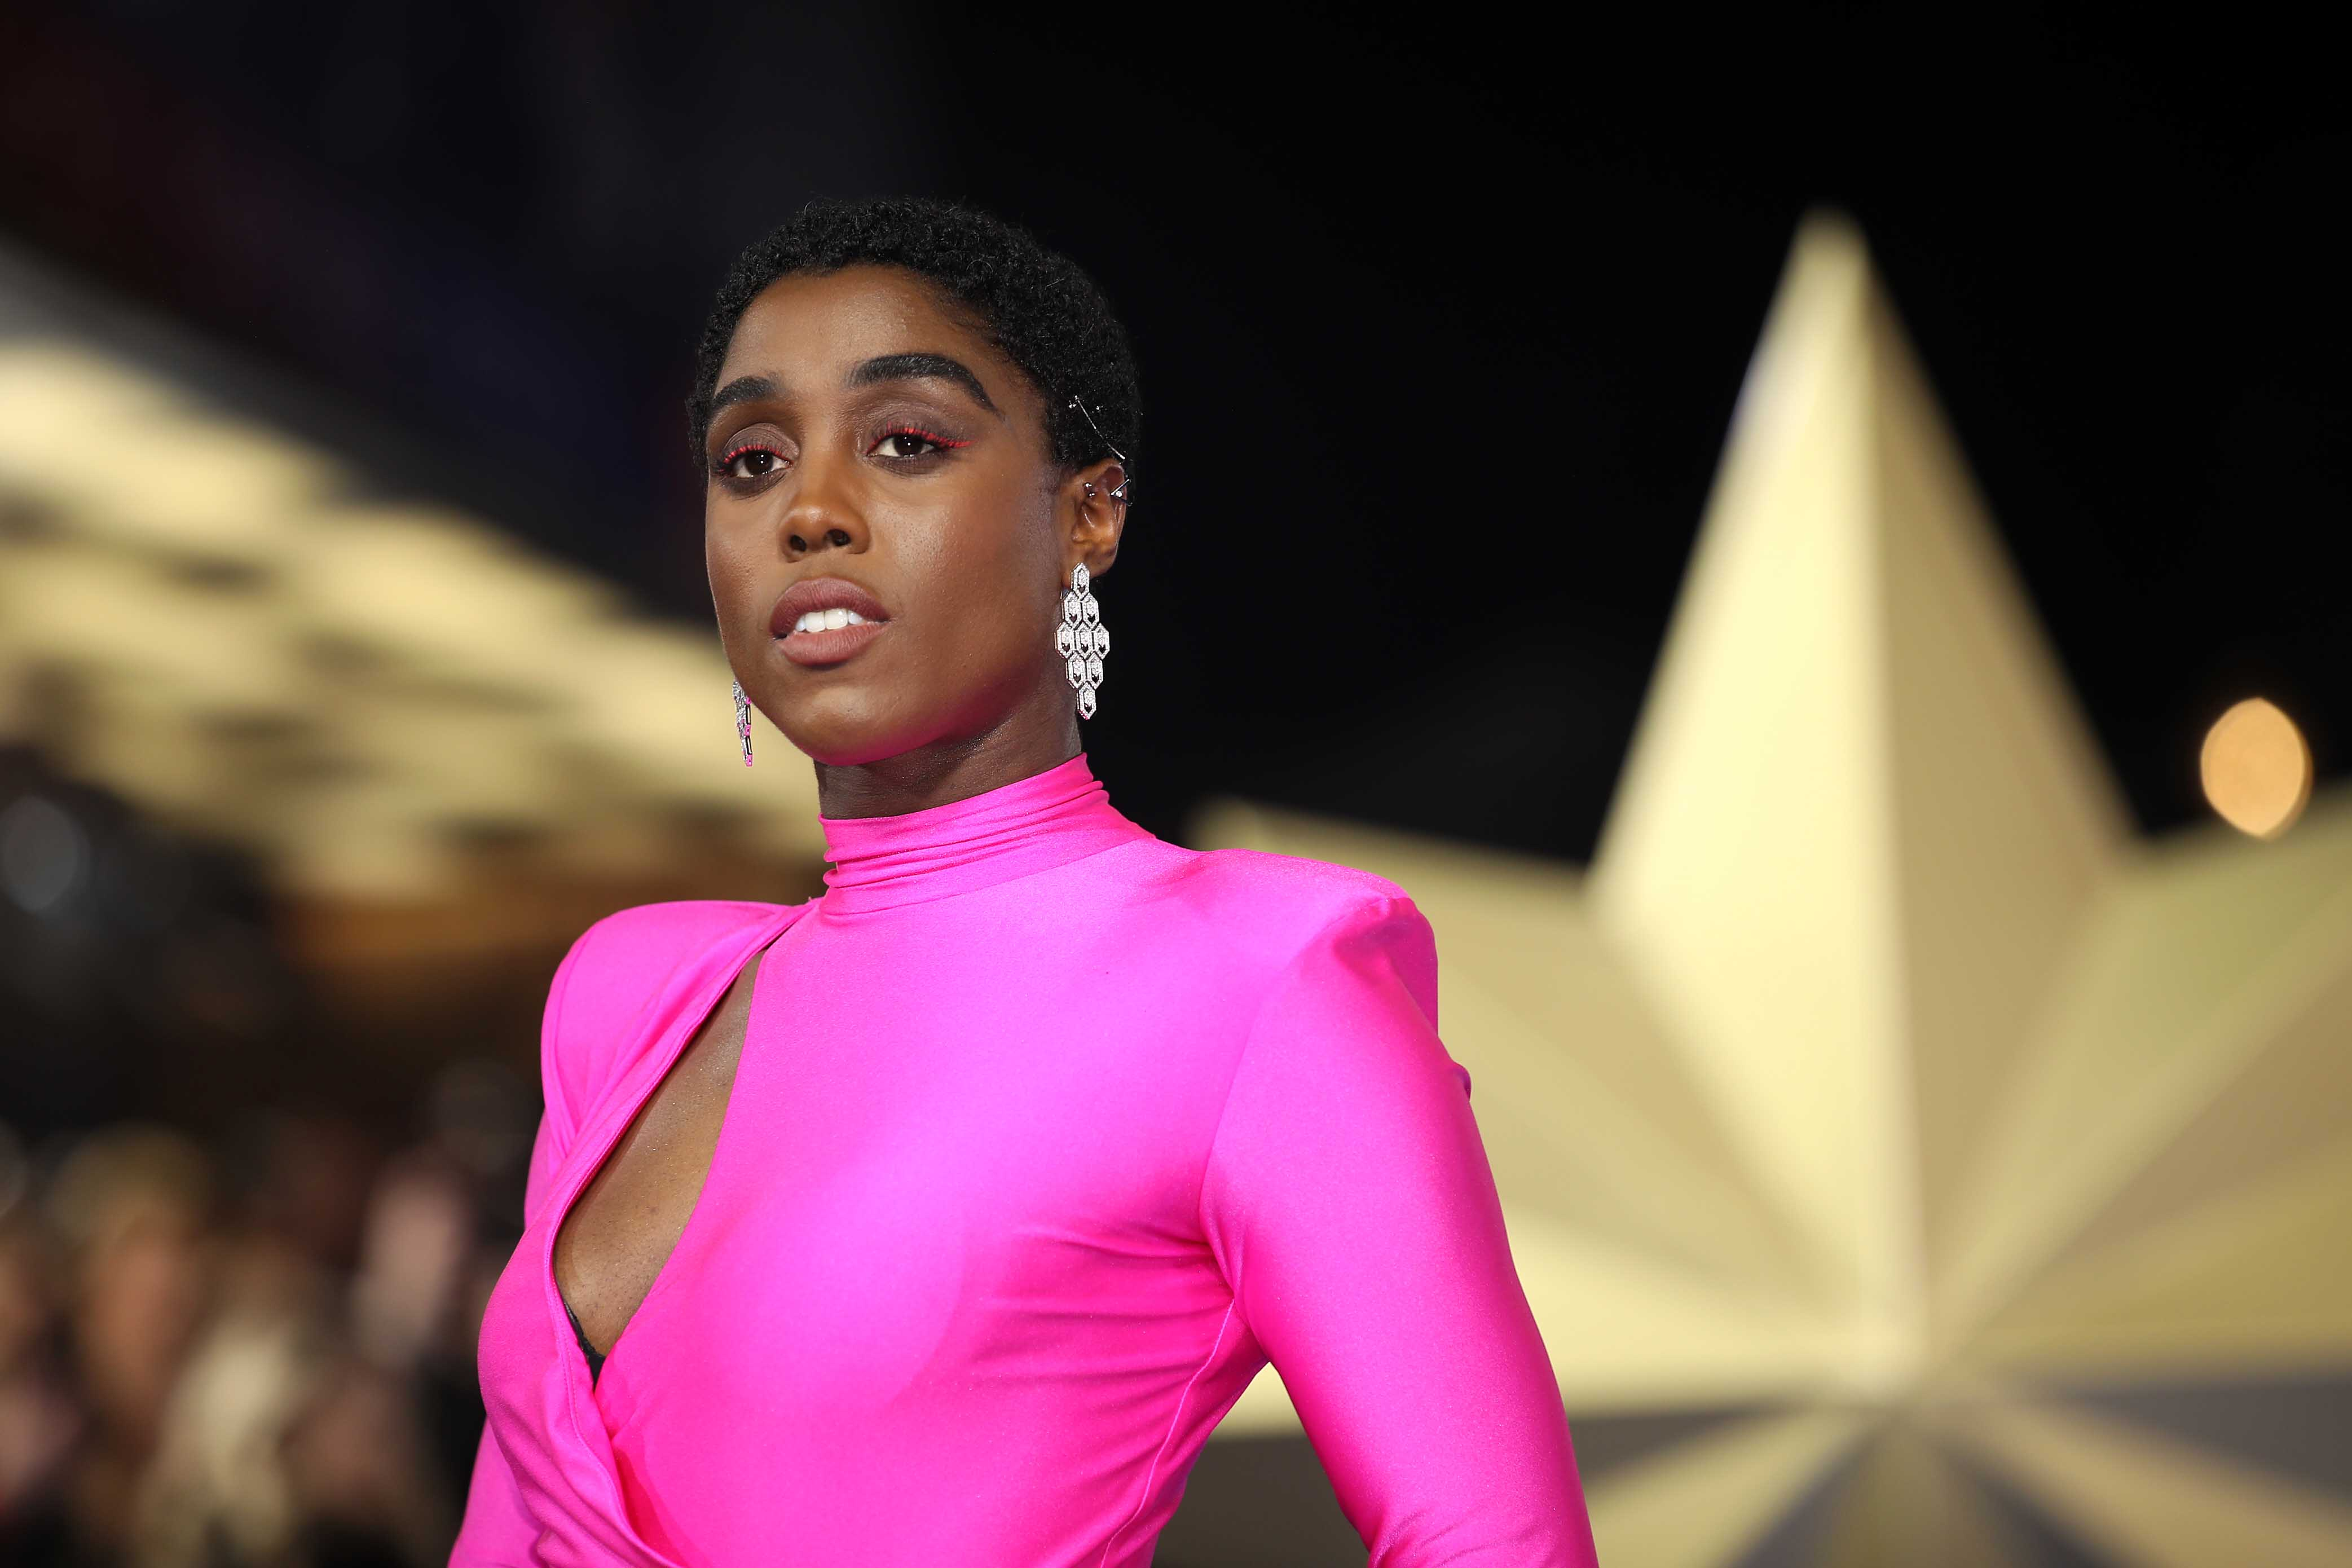 The James Bond Films Can Succeed With Lashana Lynch As 007